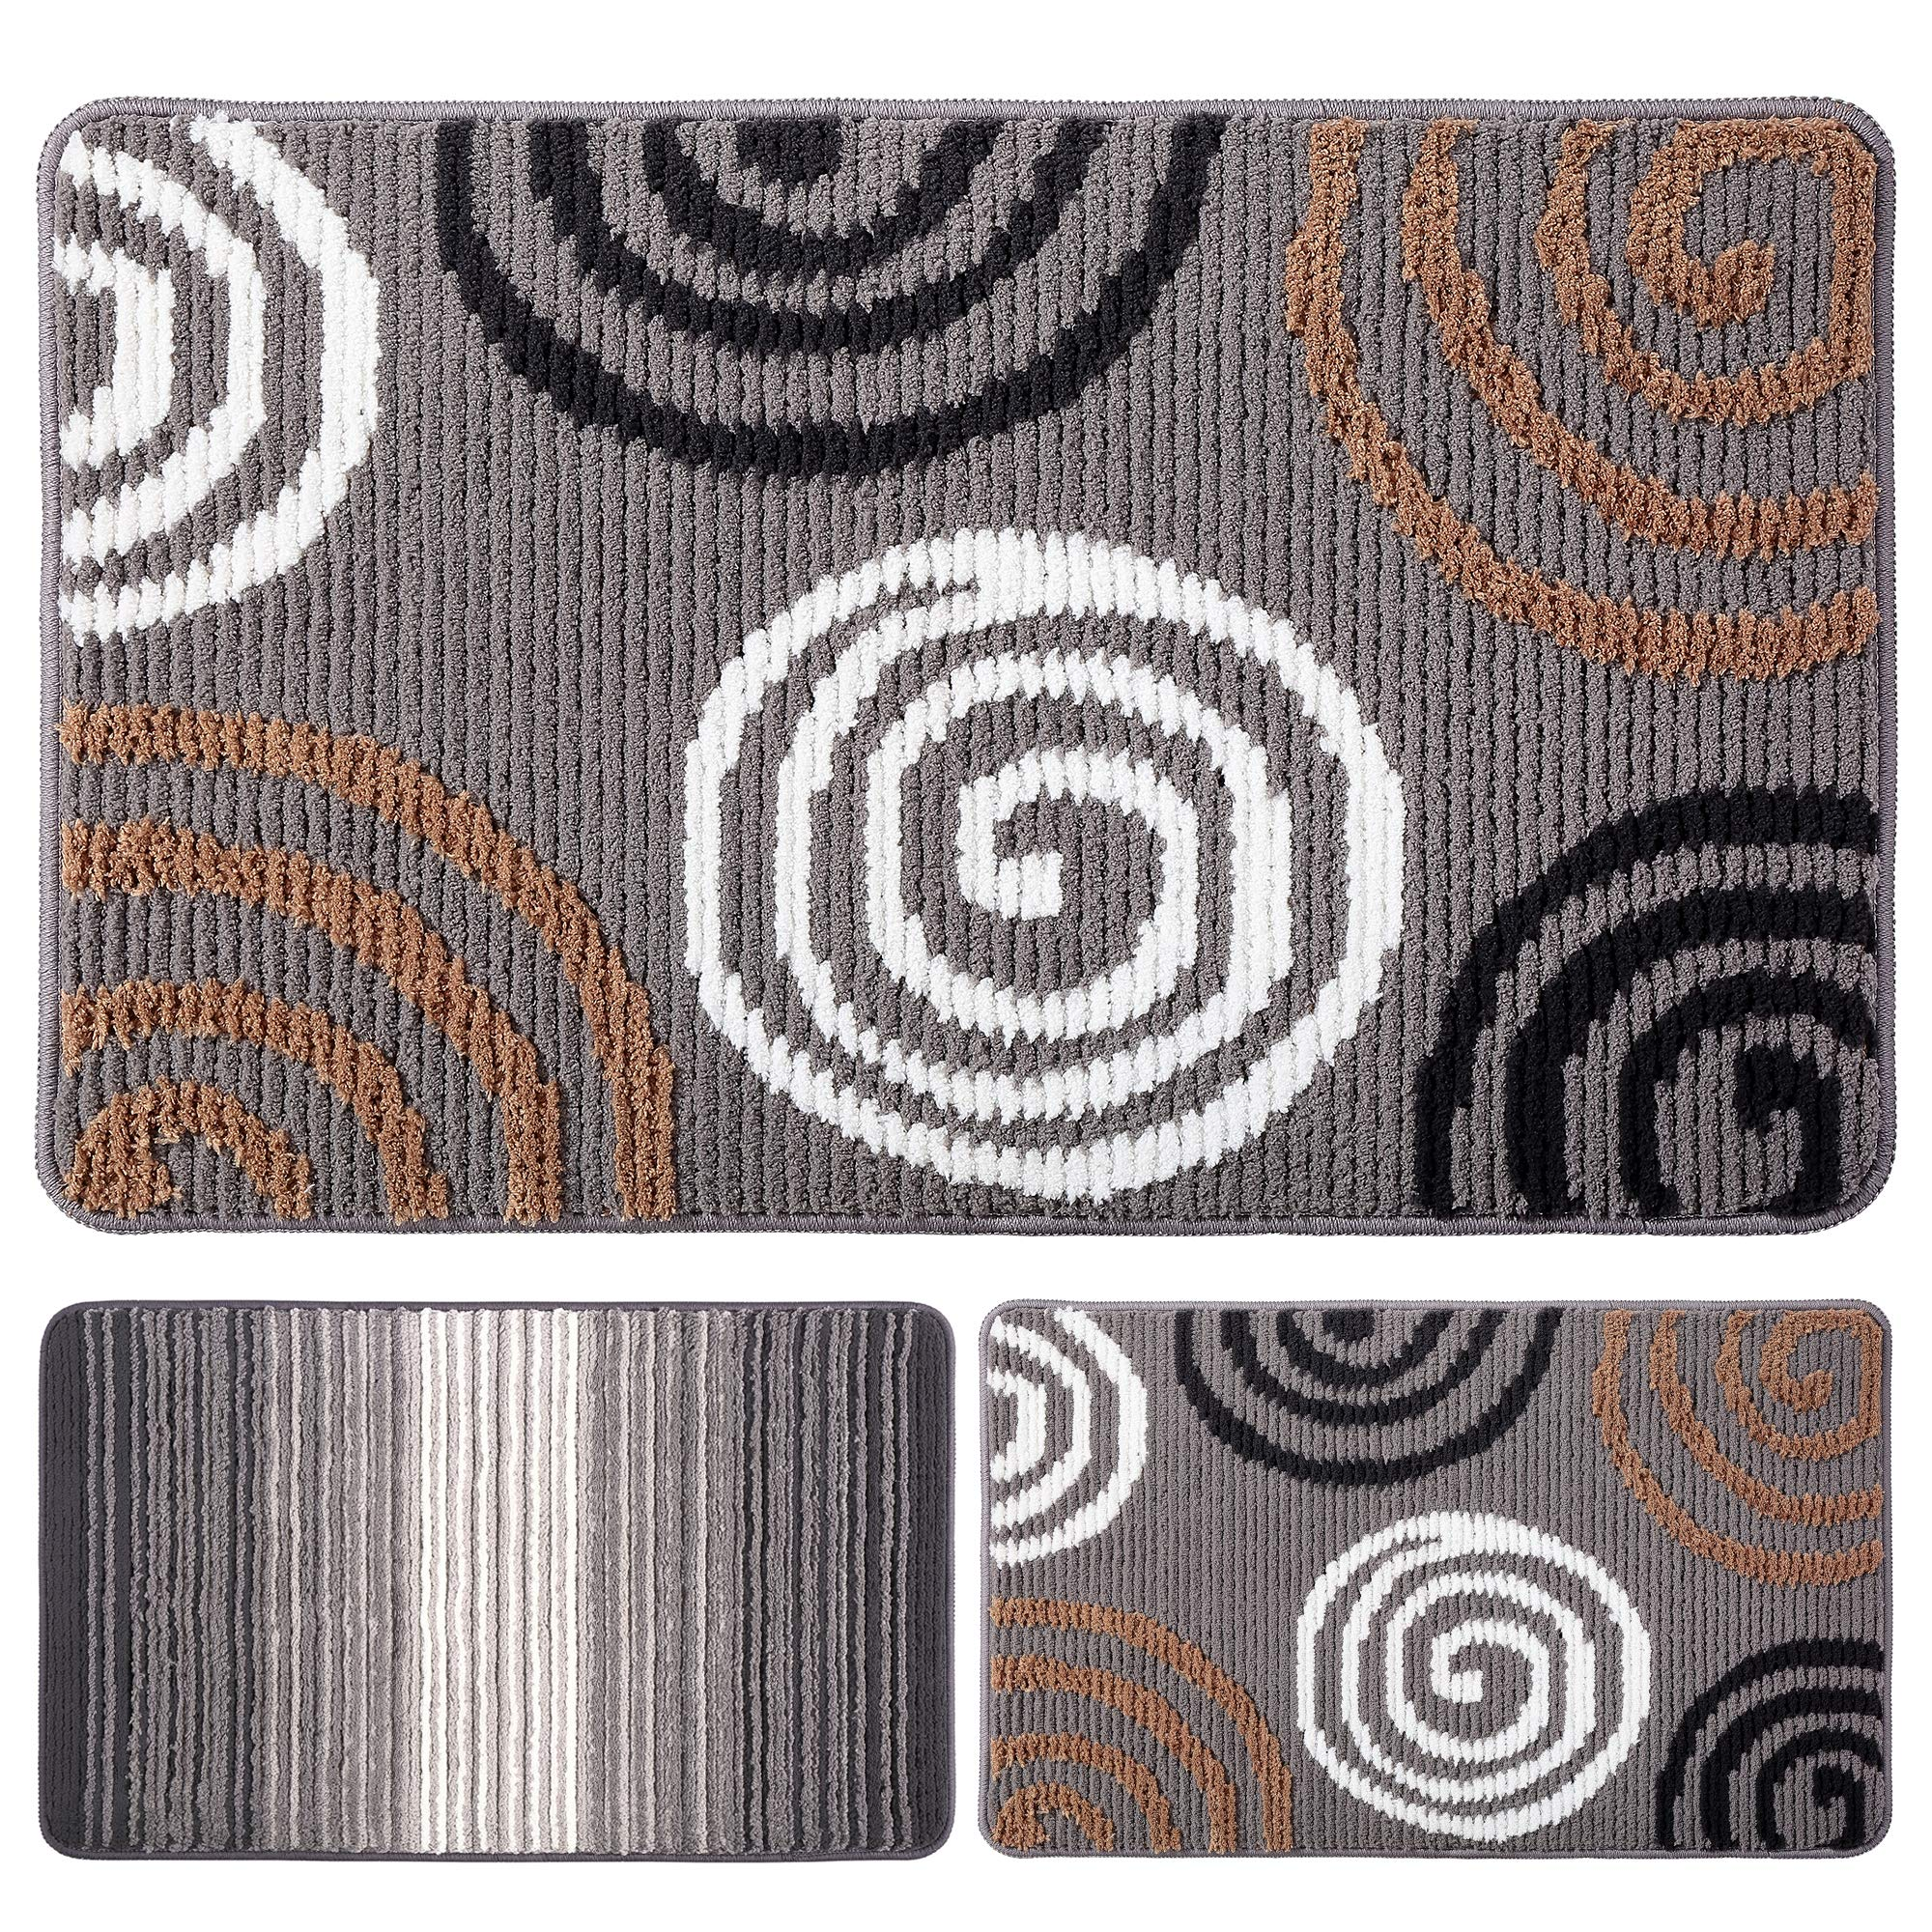 "Indoor Doormat Front Door Mat Non Slip Rubber Backing Super Absorbent Mud and Snow Magic Inside Dirts Trapper Mats Entrance Door Rug Shoes Scraper Machine Washable Rug Carpet - 19"" x 31"" (Grey)"